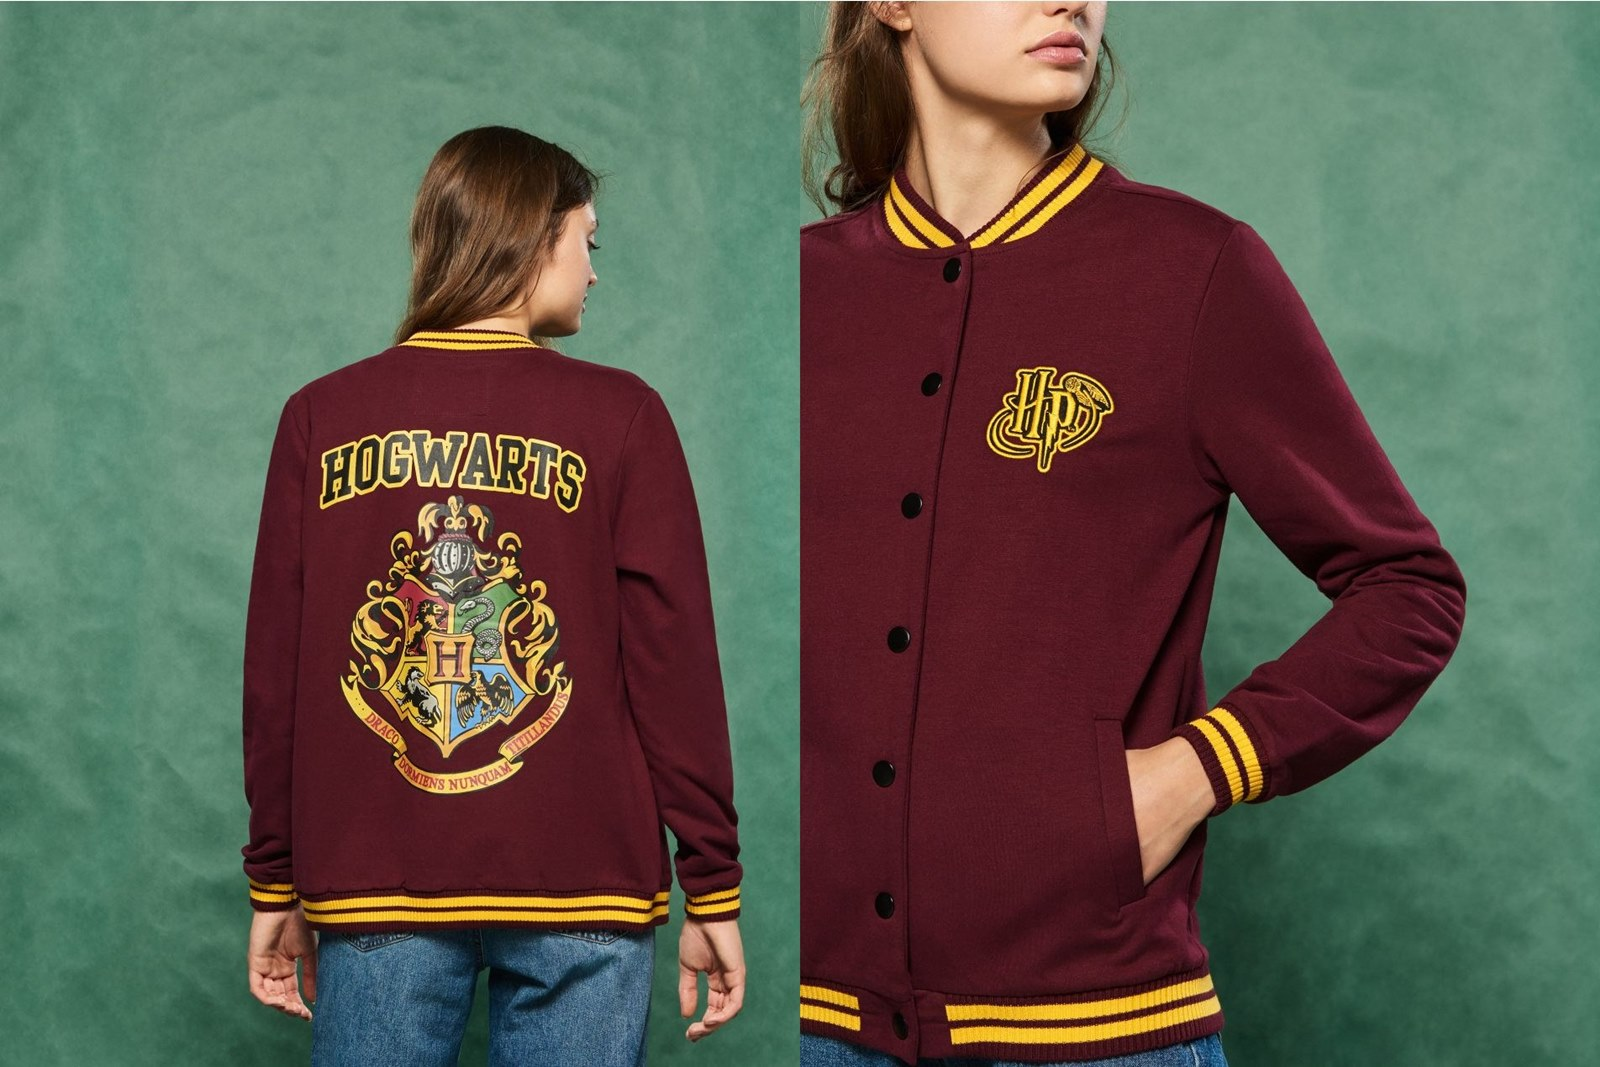 Gdzie kupić ubrania z Harrego Pottera? Sklep z harry potter, harry potter, harry potter colection, ubrania arry potter, bluza harry potter, tshirt harry potter, plecak harry potter, sinsay, house, cropp, fesswybitnie